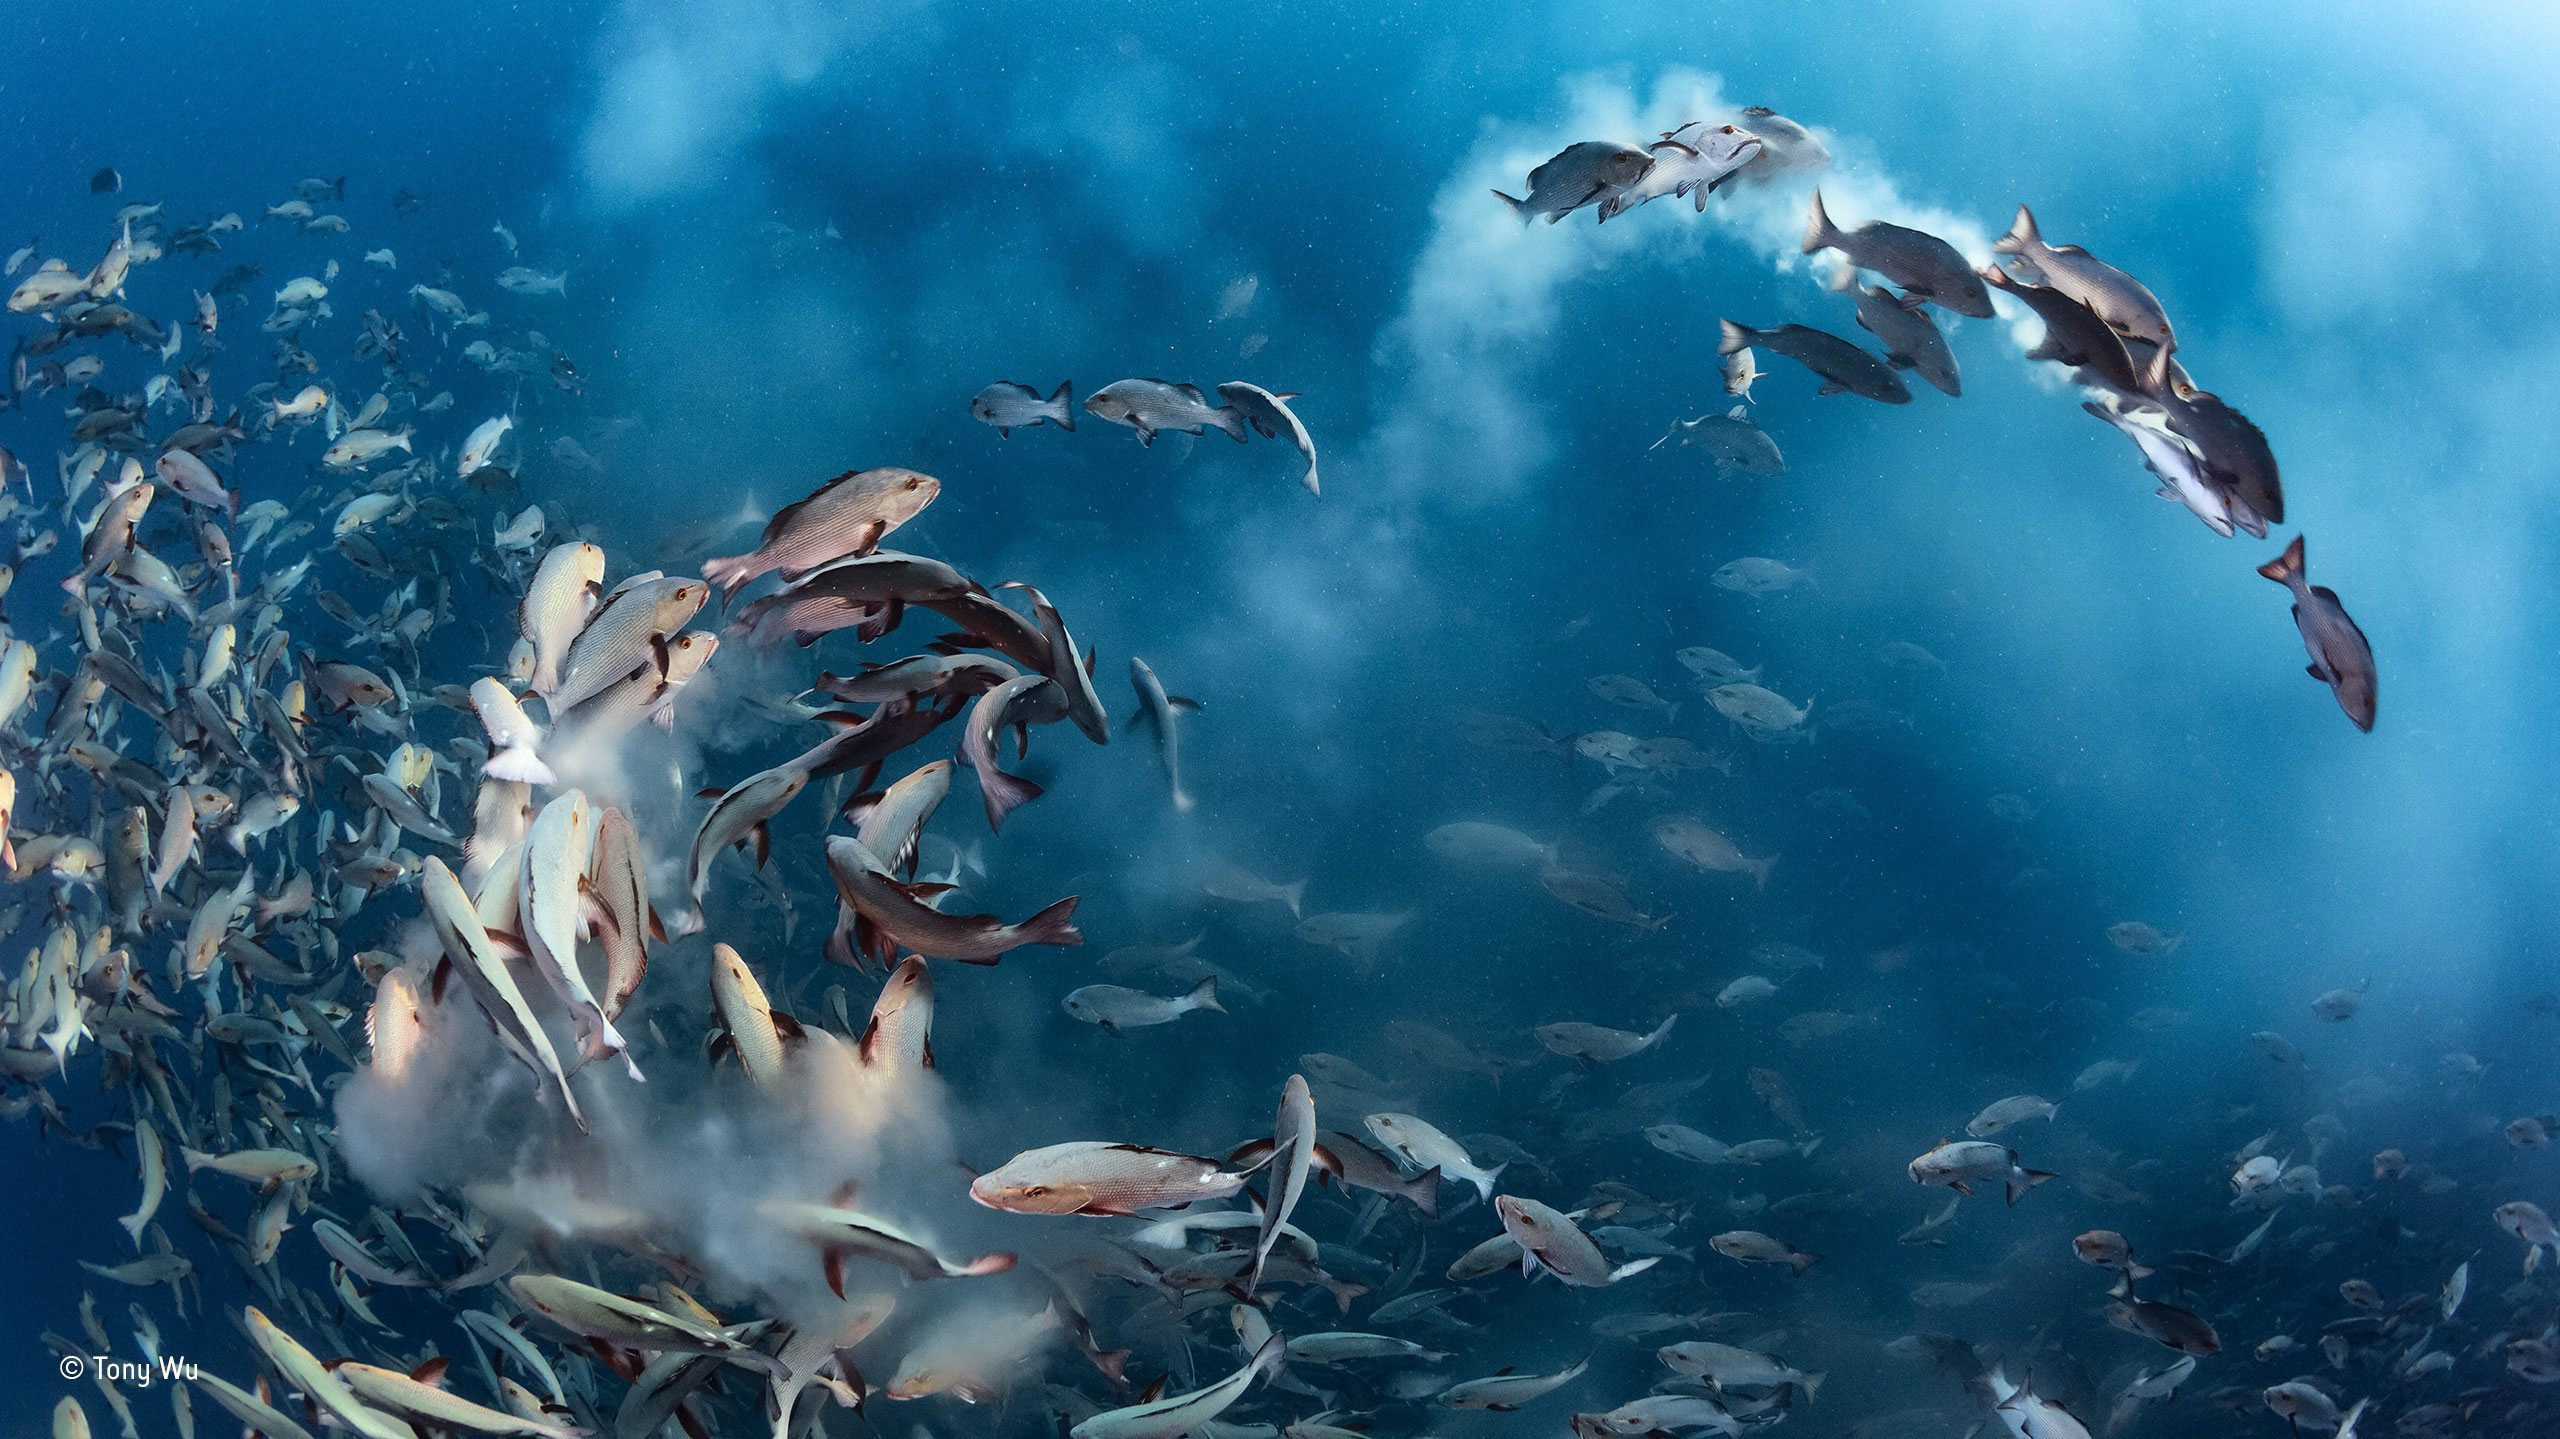 epa05593700 A handout picture provided by Wildlife Photographer of the Year. Snapper party, Tony Wu, US  Winner, underwater category For several days each month, thousands of two spot red snappers gather to spawn around Palau in the western Pacific Ocean. The action is intense as the fish fill the water with sperm and eggs, and predators arrive to take advantage of the bounty. Noticing that the spawning ran 'like a chain reaction up and down the mass of fish', Wu positioned himself so that the action came to him. On this occasion, with perfect anticipation, he managed to capture a dynamic arc of spawning fish amid clouds of eggs in the oblique morning light.  EPA/TONY WU / WILDLIFE PHOTOGRAPHER OF THE YEAR Wildlife Photographer of the Year is developed and produced by the Natural History Museum, London.  HANDOUT EDITORIAL USE ONLY/NO SALES HANDOUT EDITORIAL USE ONLY/NO SALES